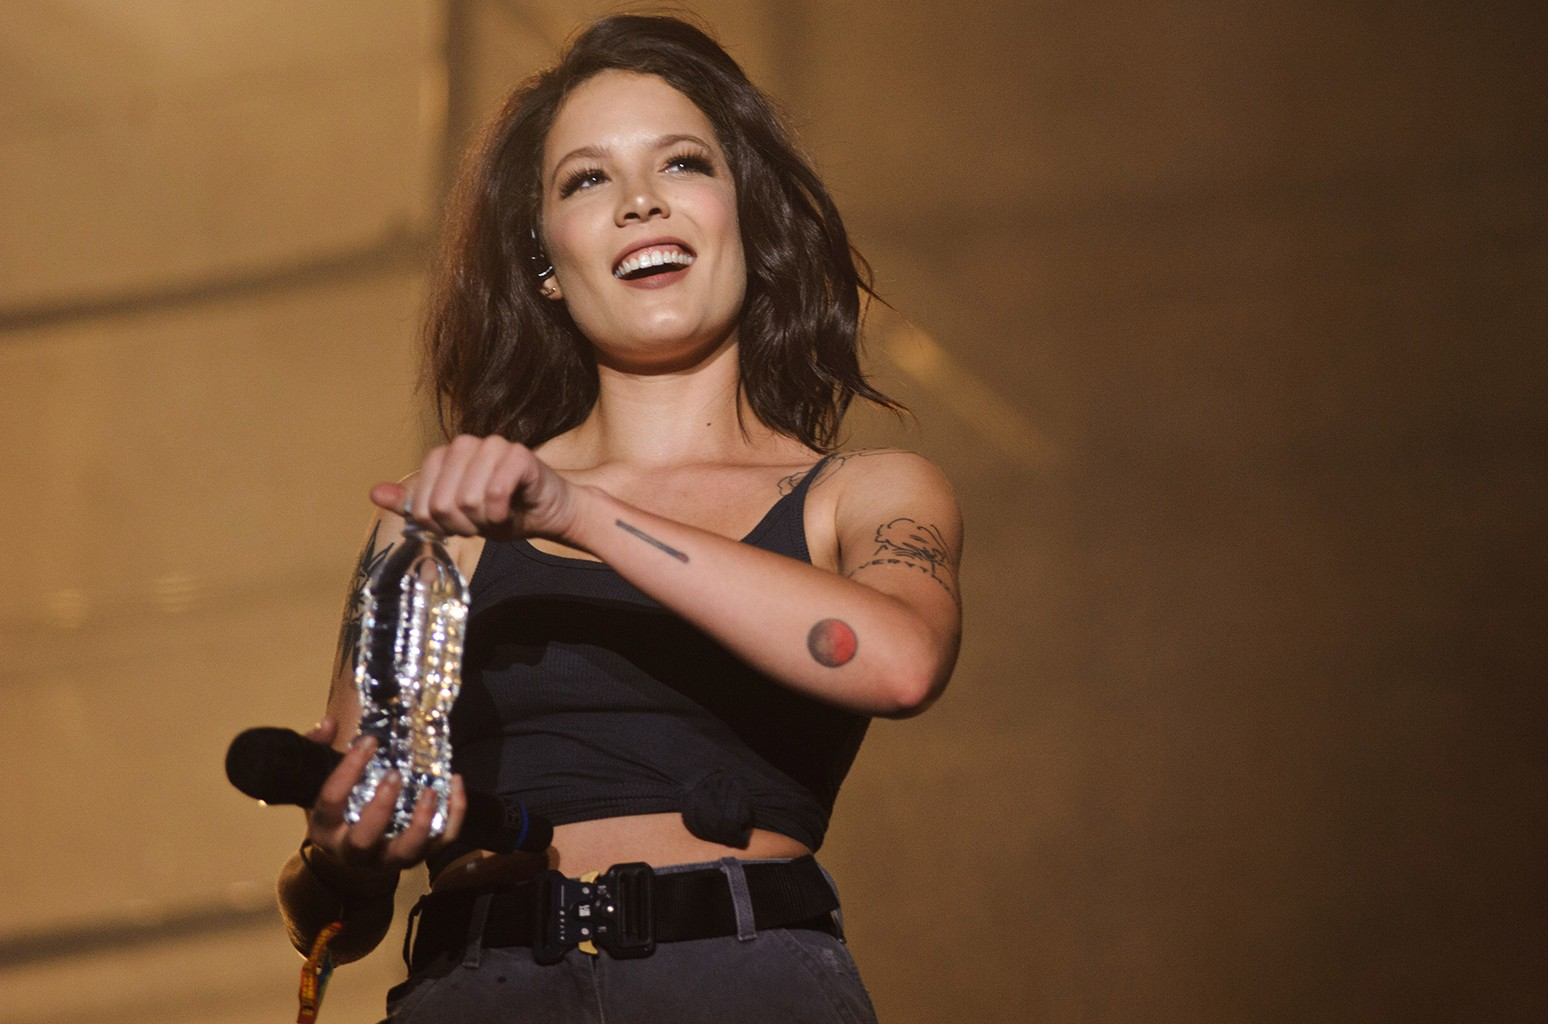 Halsey performs at the 2016 Bumbershoot Festival